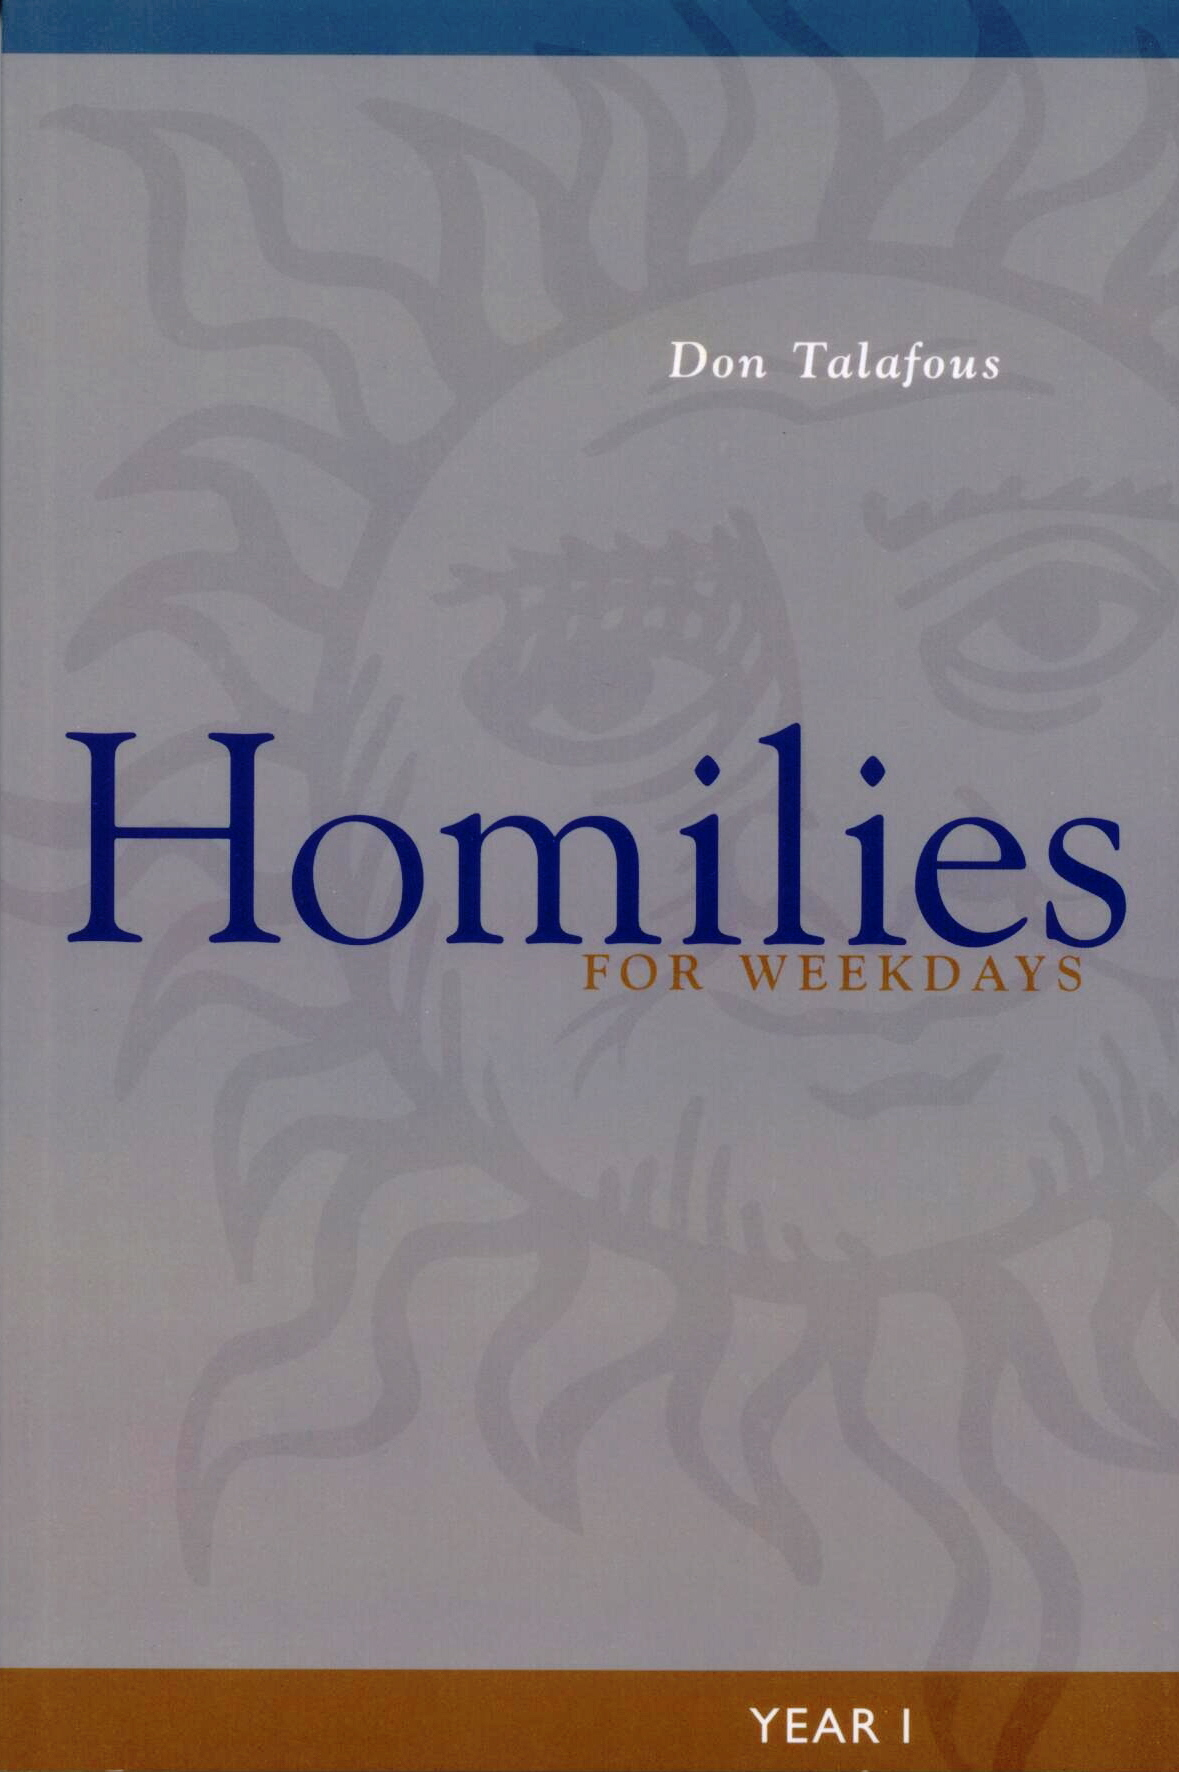 Homilies For Weekdays Year I, by Don Talafous #9780814630310